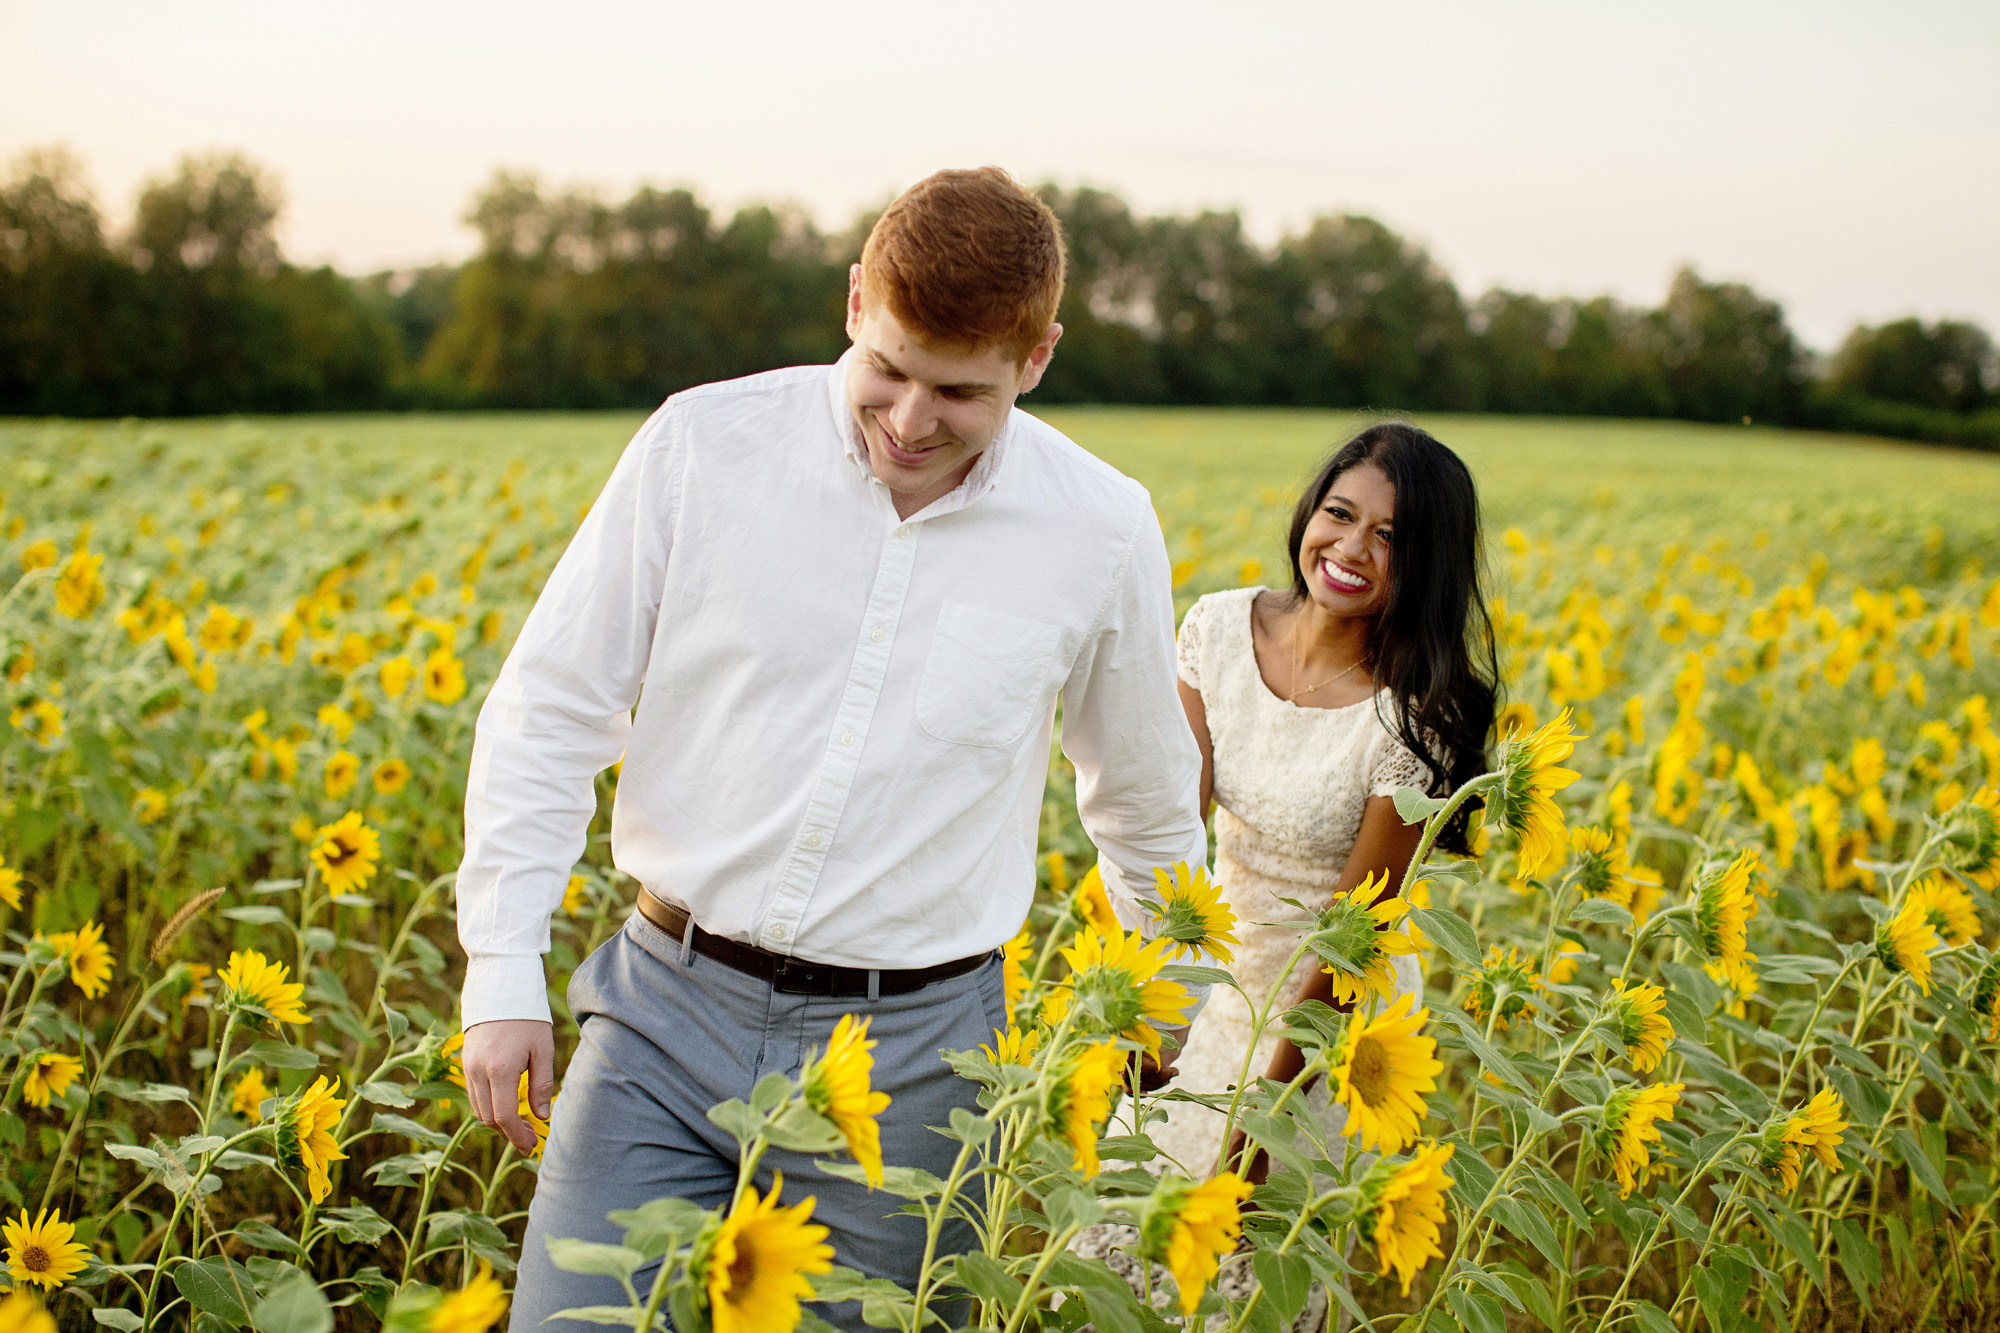 Seriously_Sabrina_Photography_Lexington_Midway_Kentucky_Engagement_Merefield_Sunflowers_Naz_and_Drew12.jpg